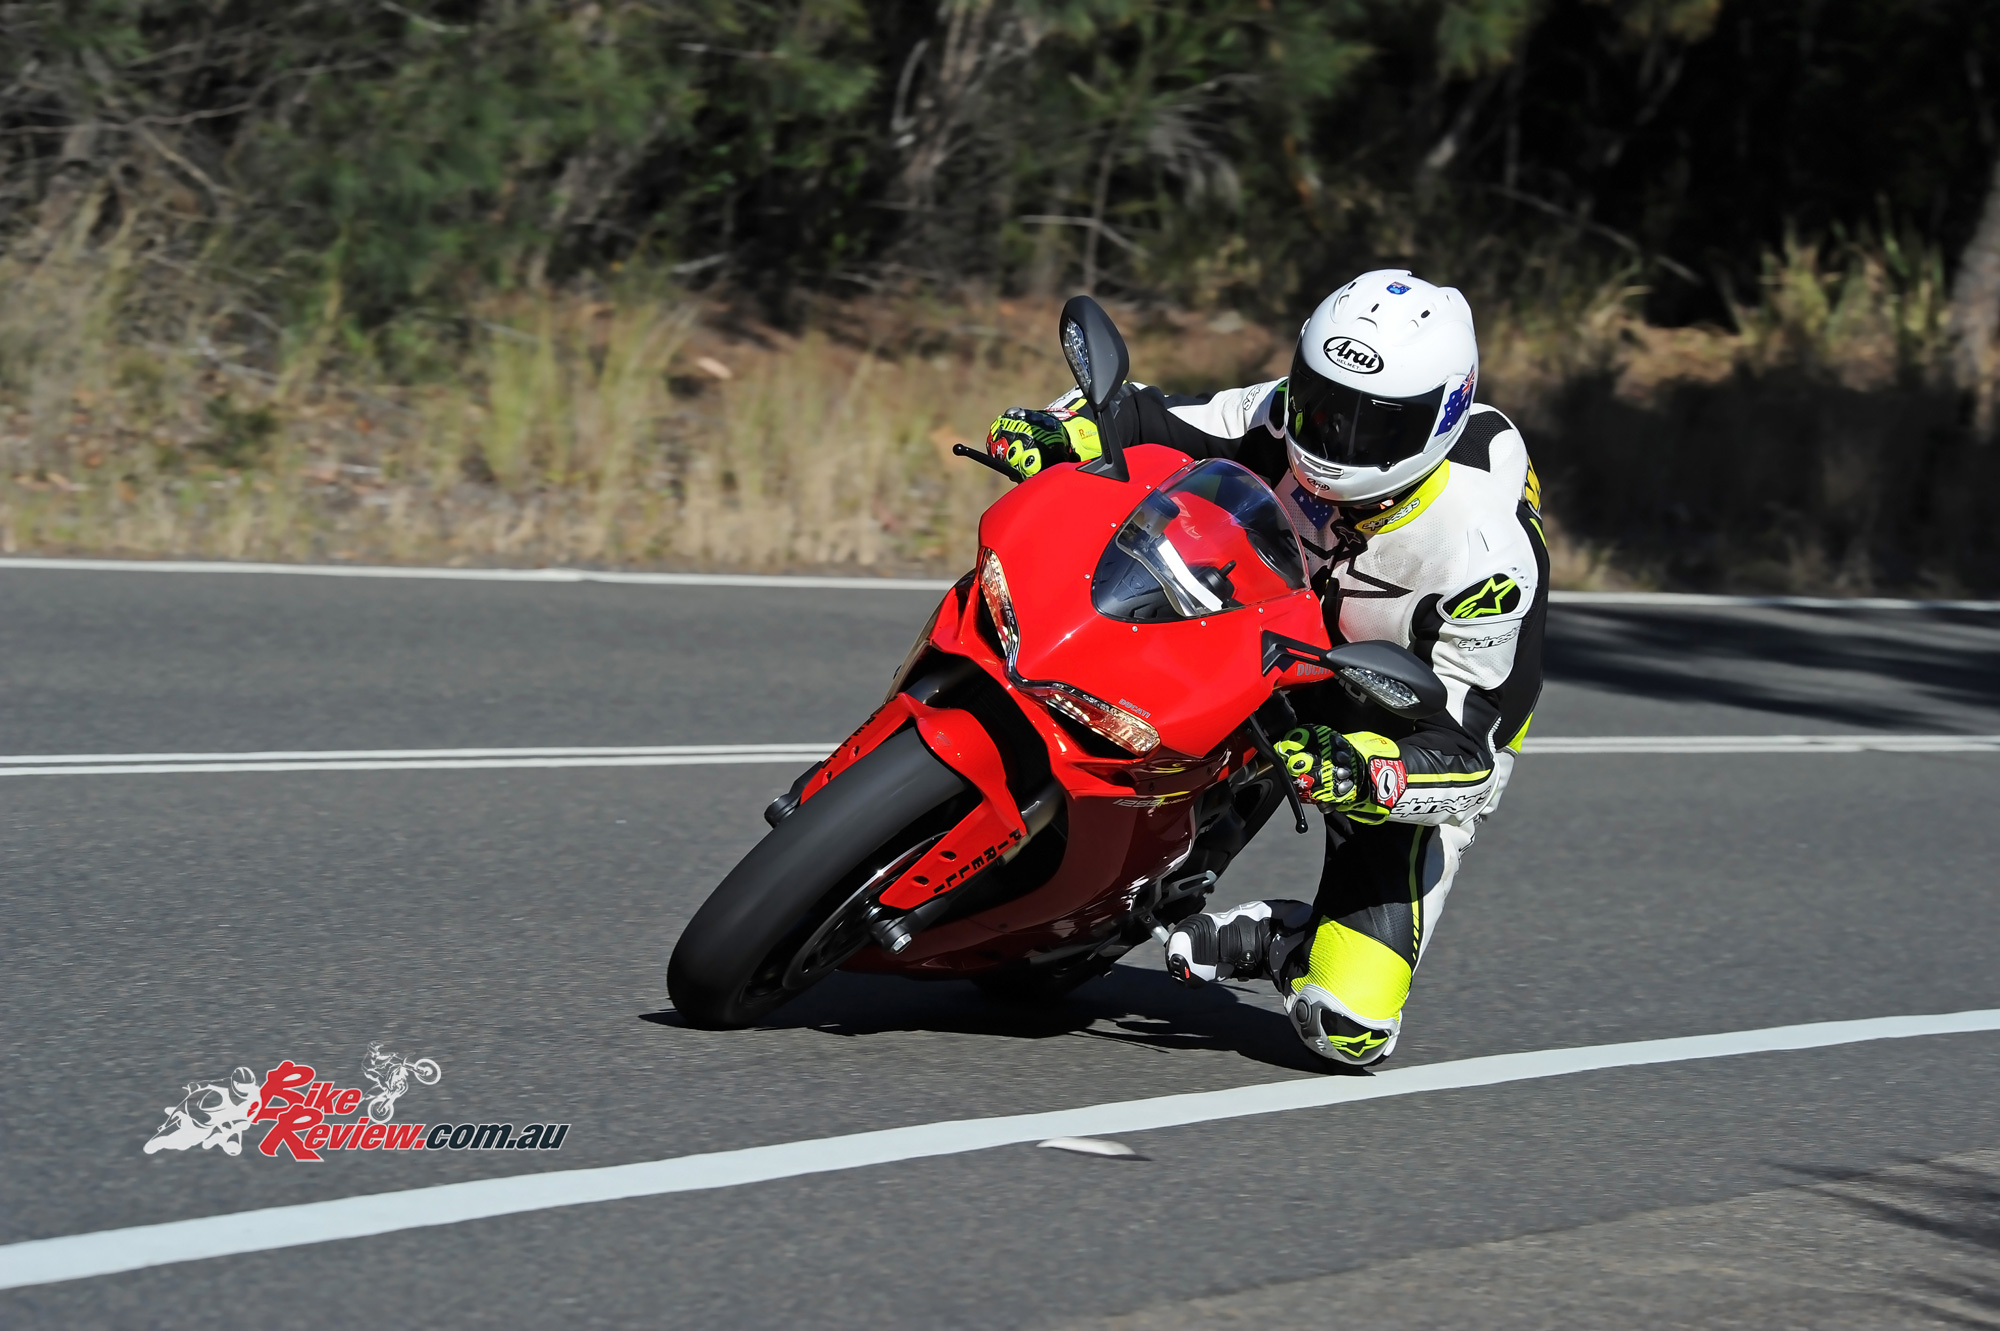 Ducati Panigale 1299 >> Review: 2016 Ducati Panigale 1299 - Bike Review